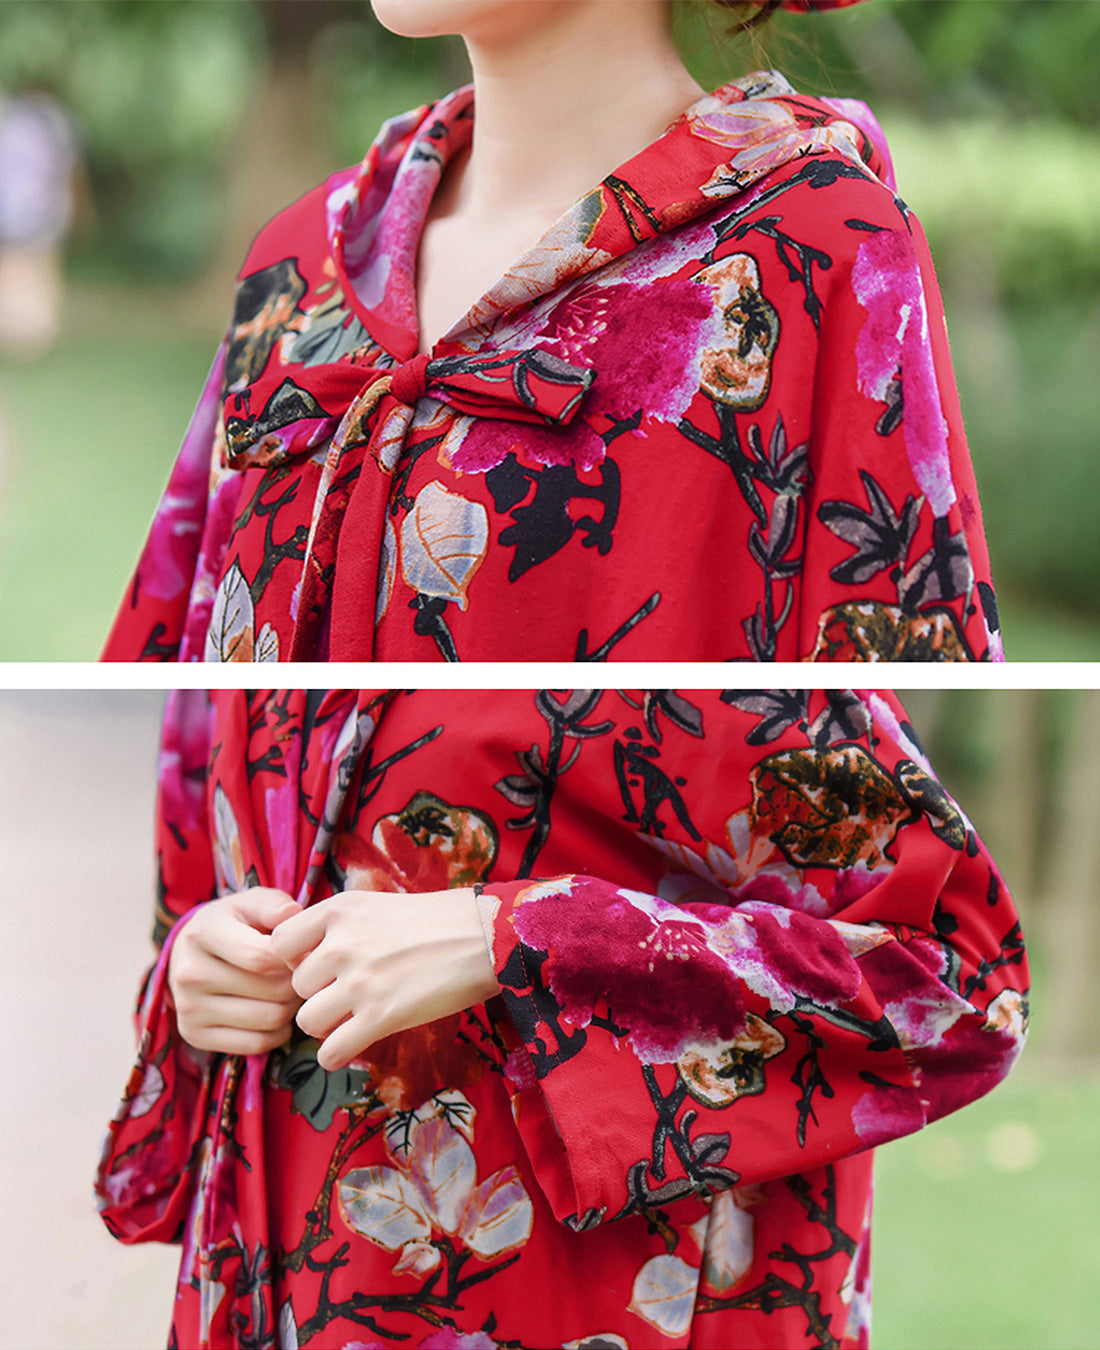 Floral Printed Hooded Red Cape Coat Details 1